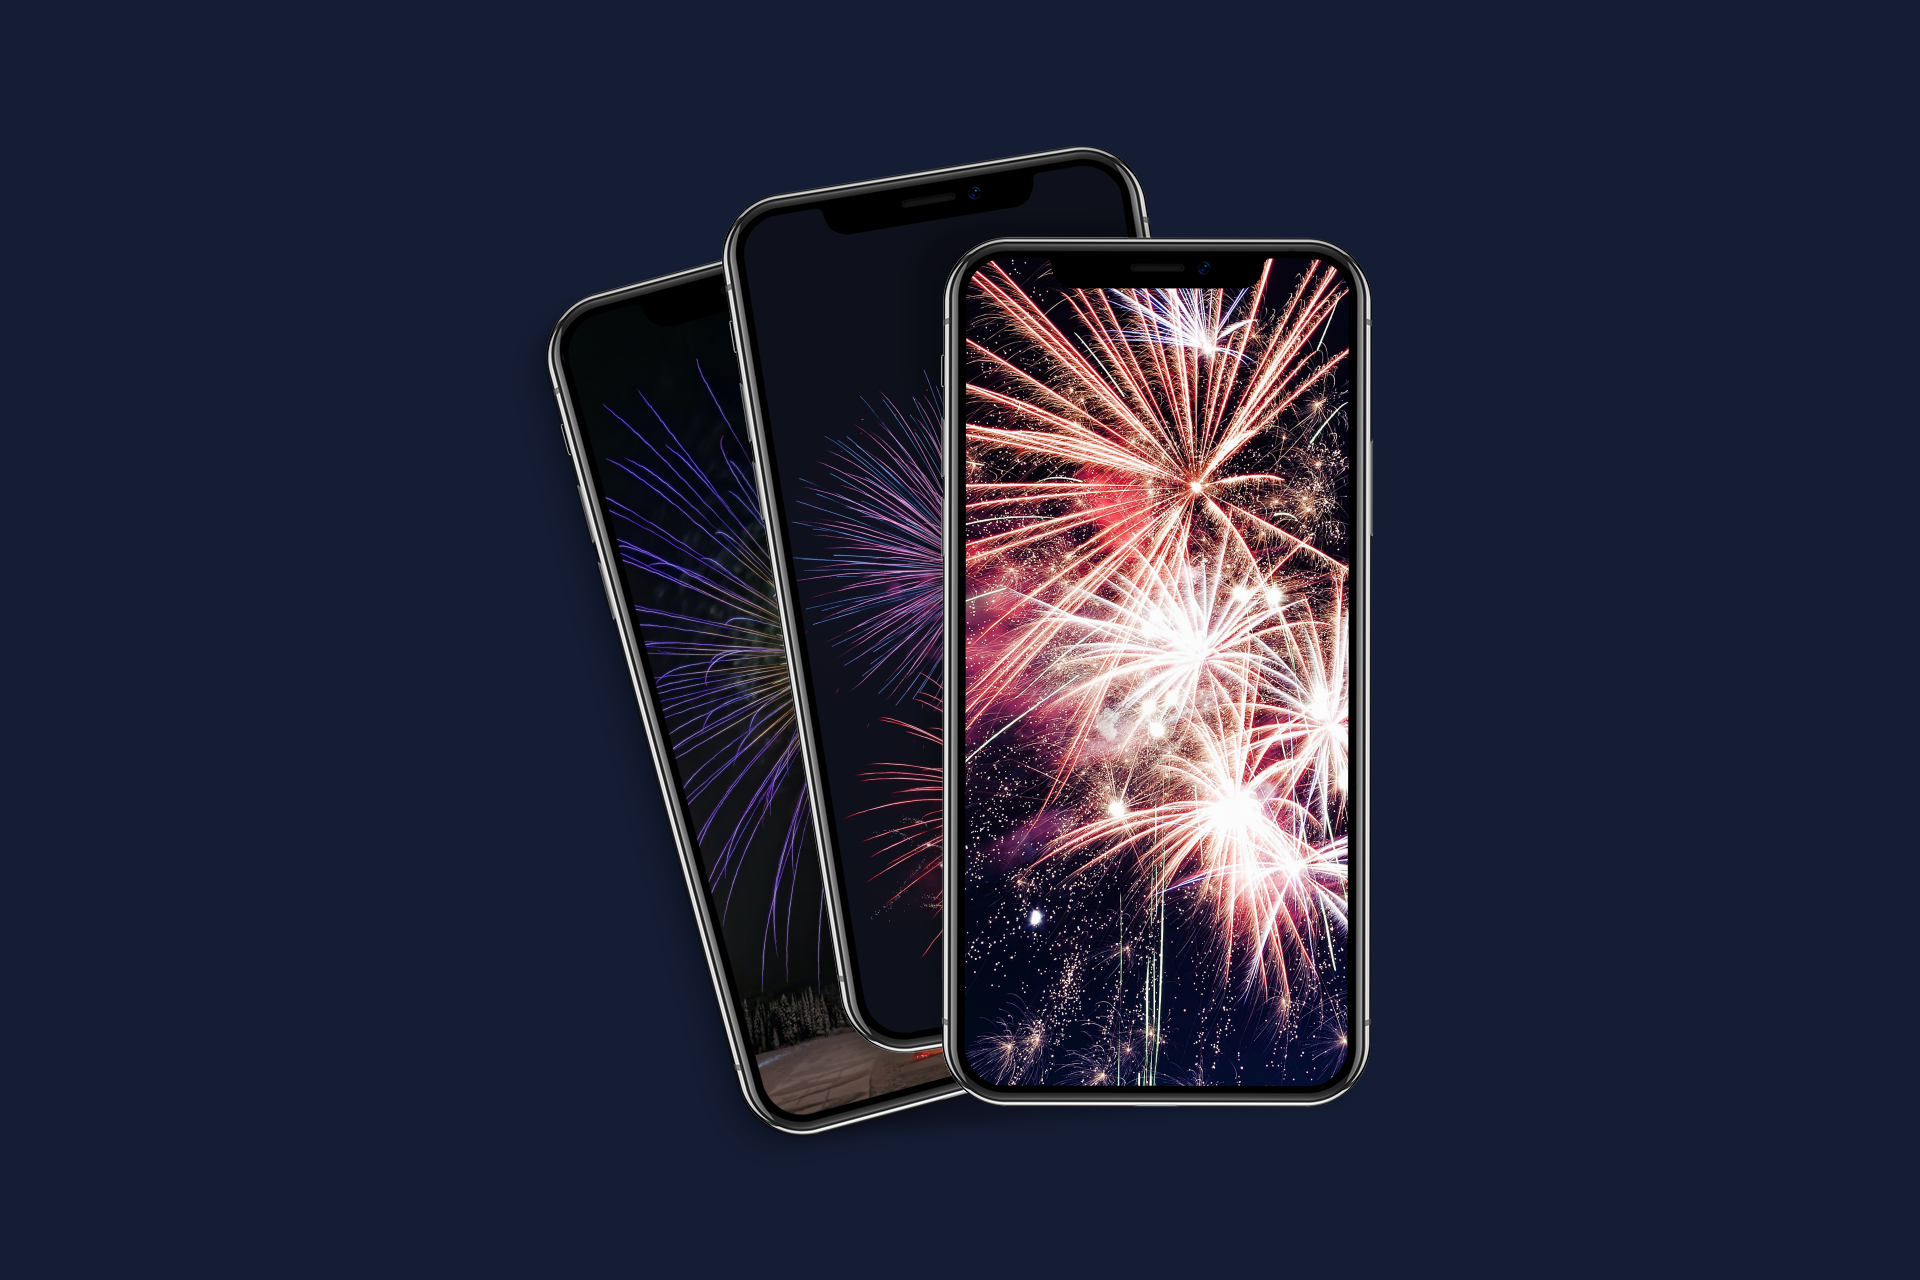 New Years Eve iPhone wallpaper pack 1920x1280